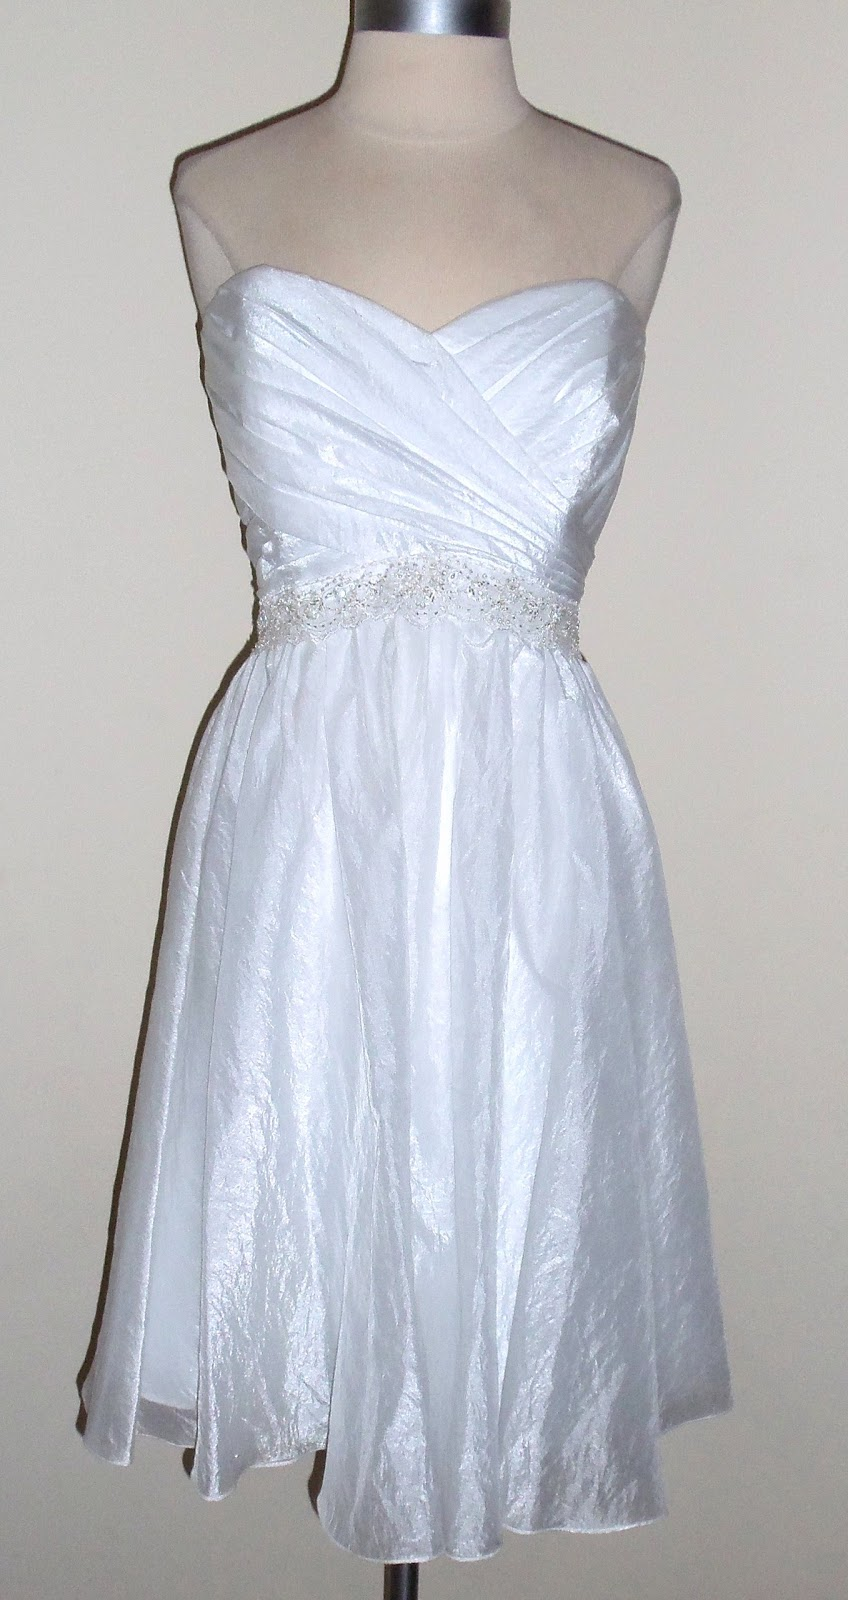 Thrifty chic shop alfred angelo short wedding dress size 14 for Alfred angelo black and white wedding dress